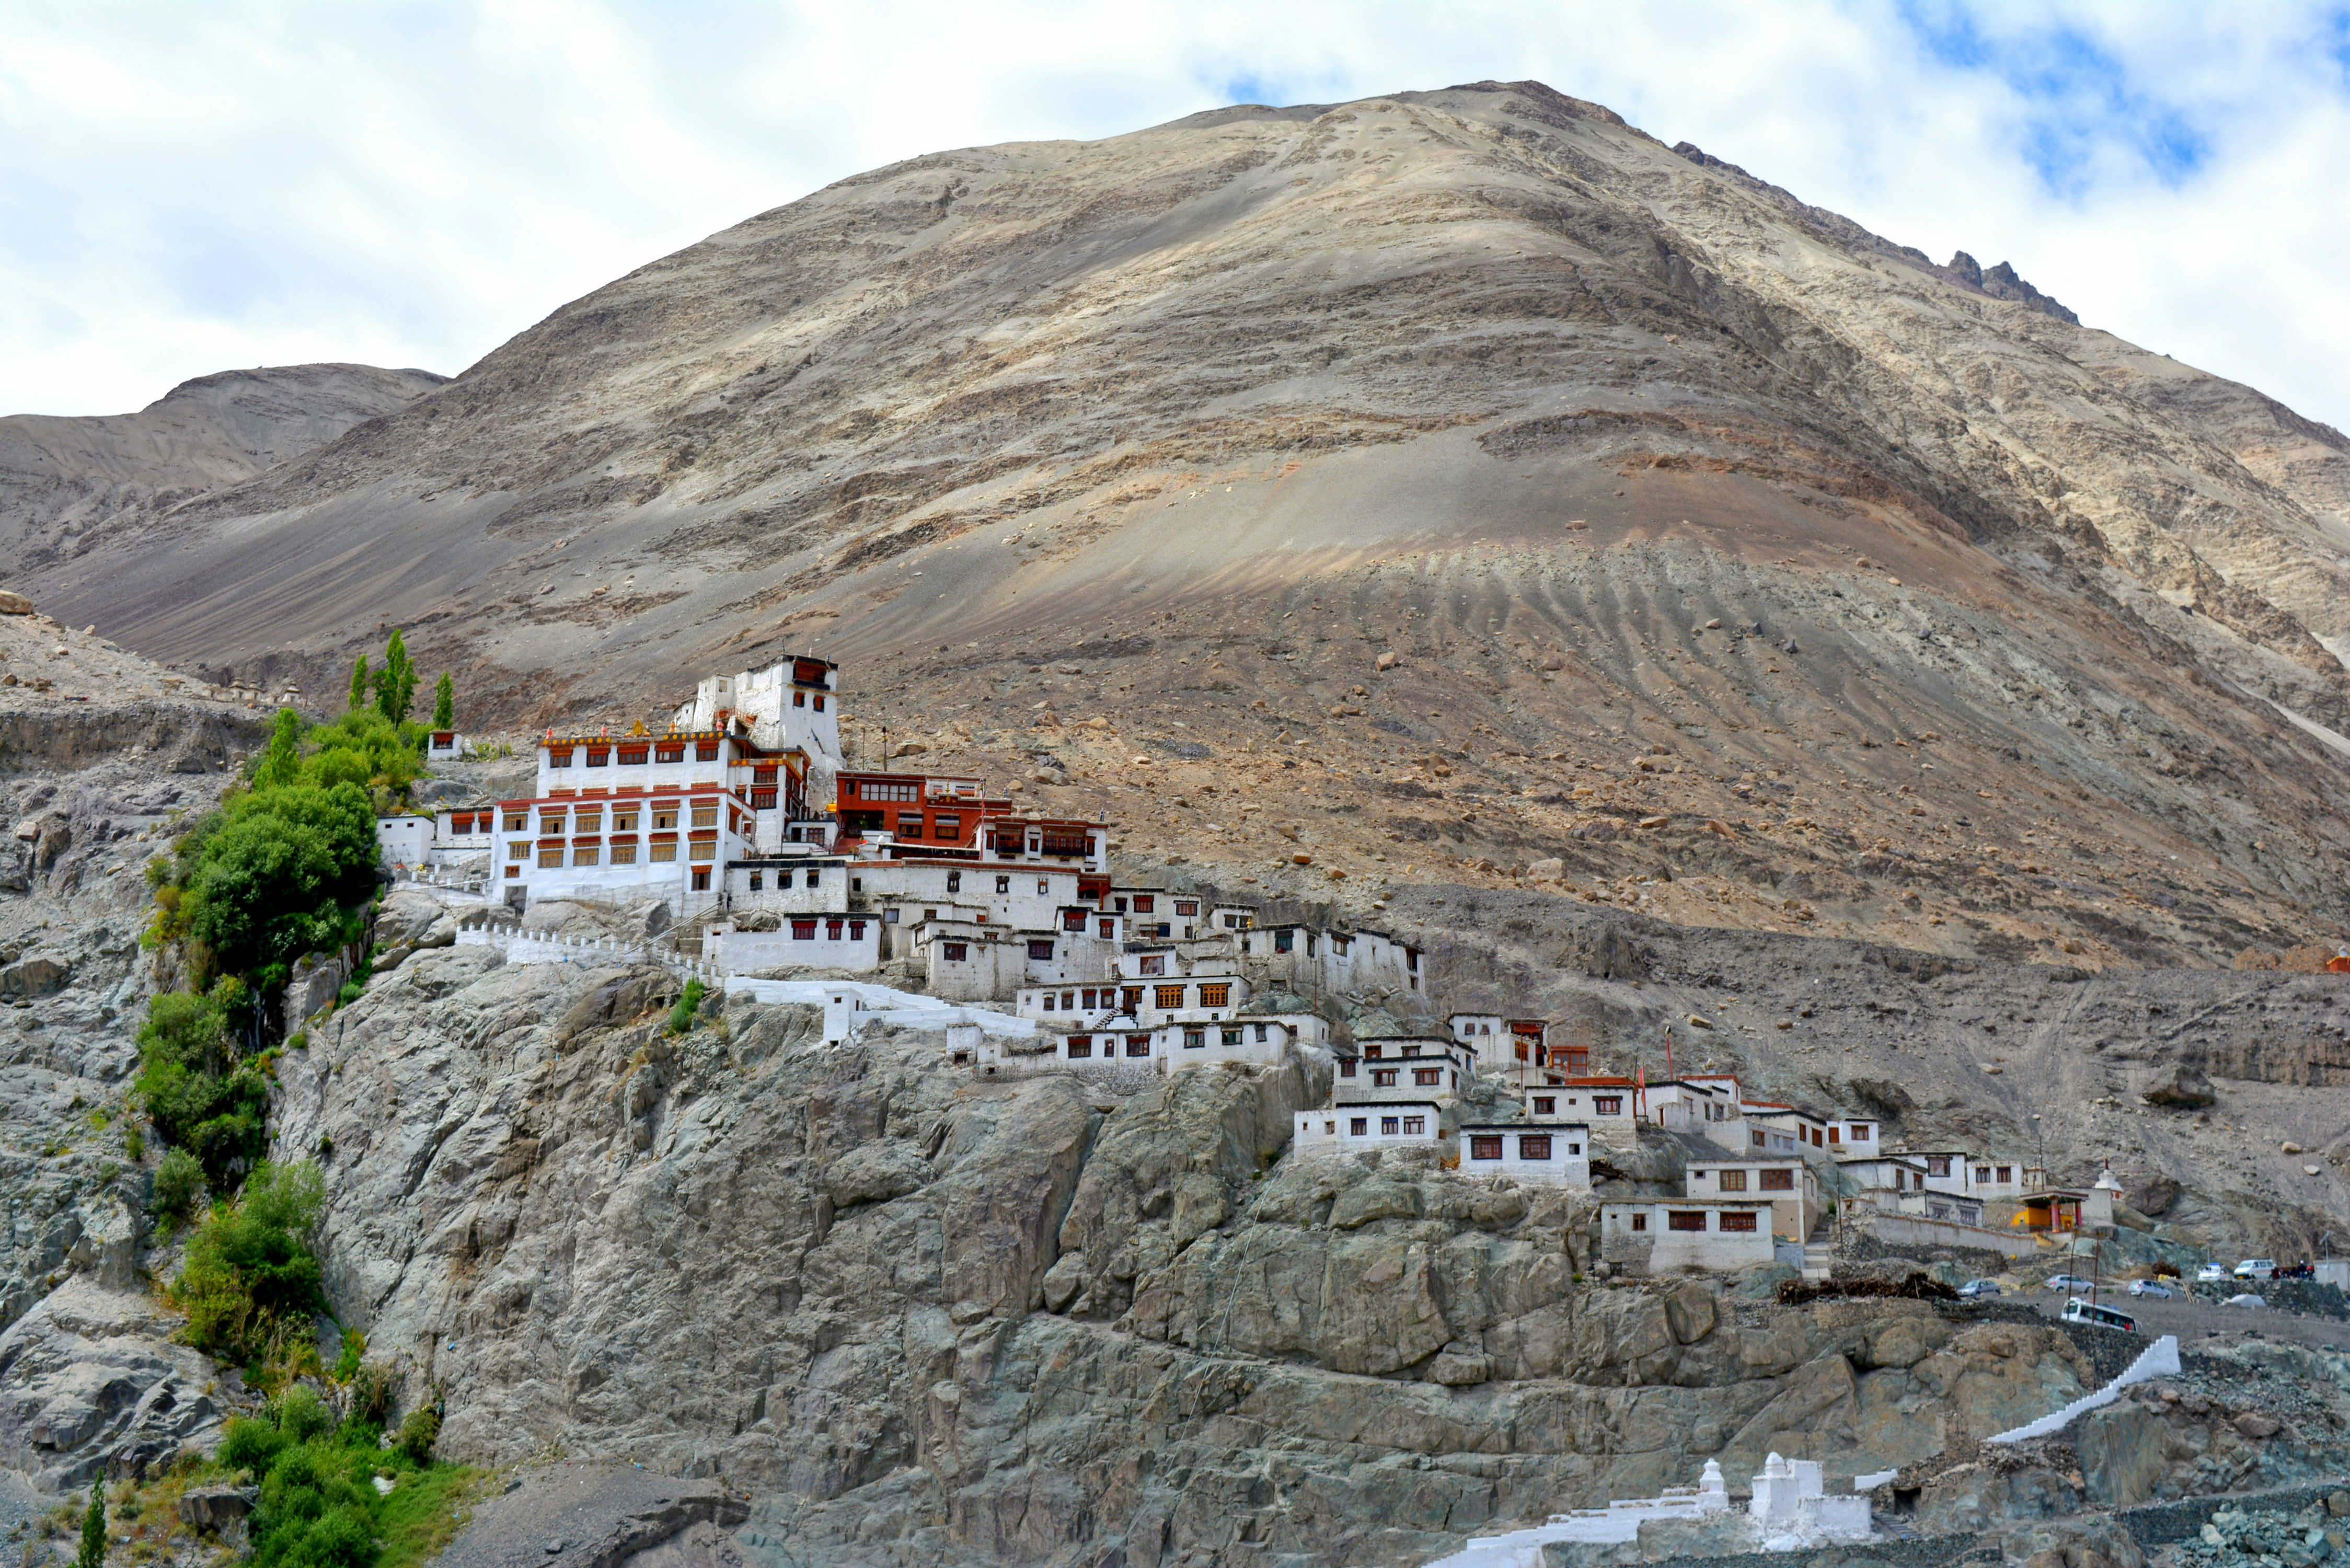 44 Thrillophilia Reviews for Leh Ladakh Group Tour Package